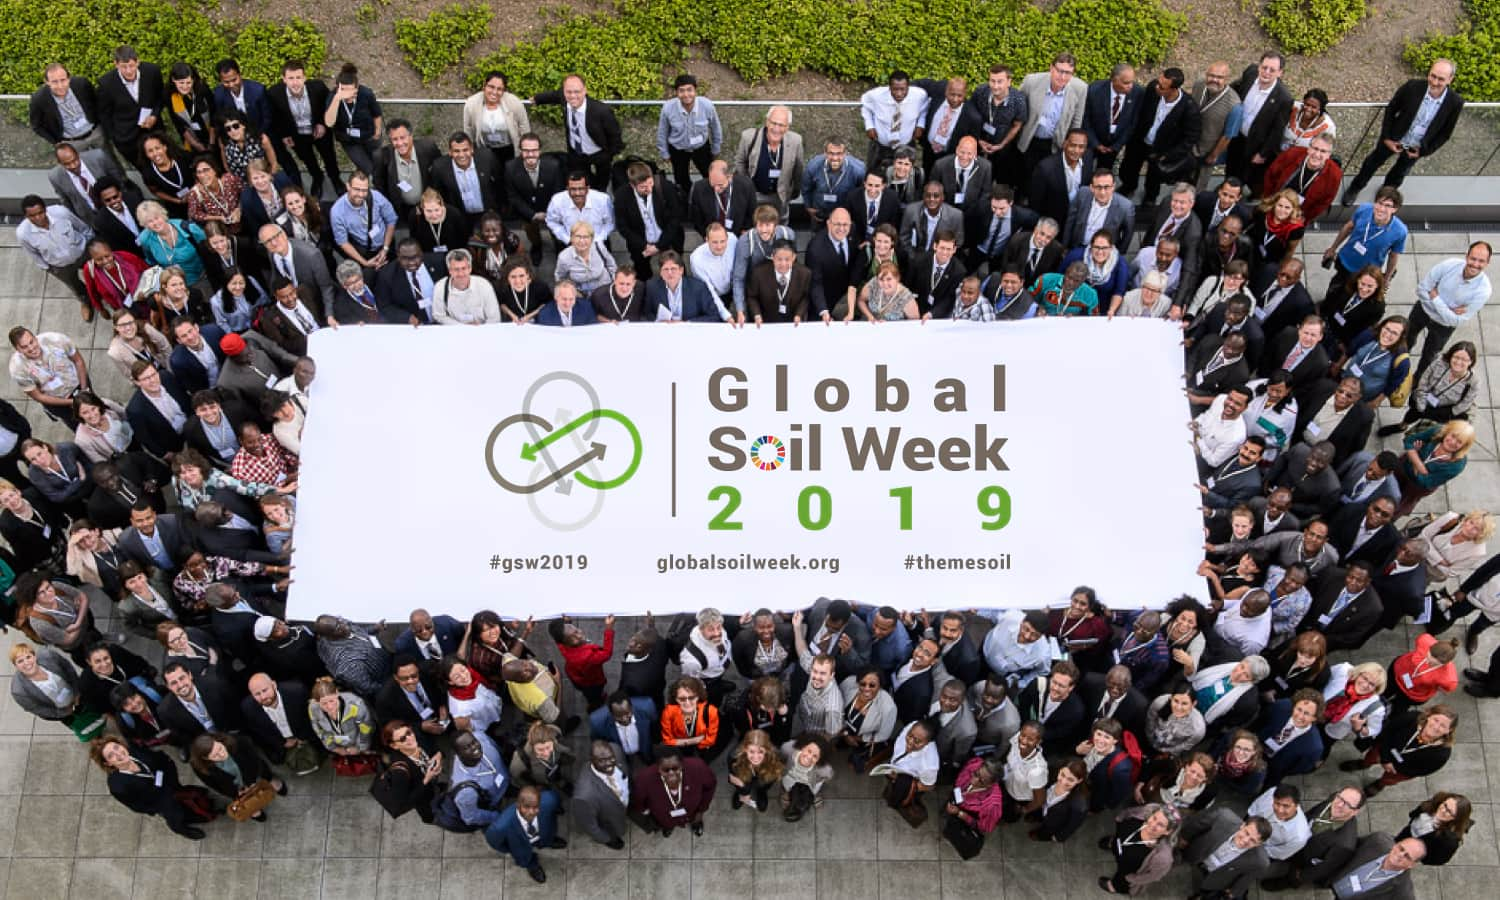 The 5th Global Soil Week will convene more than 200 experts, policymakers, and civil society representatives to discuss the urgency for investing in sustainable land management.